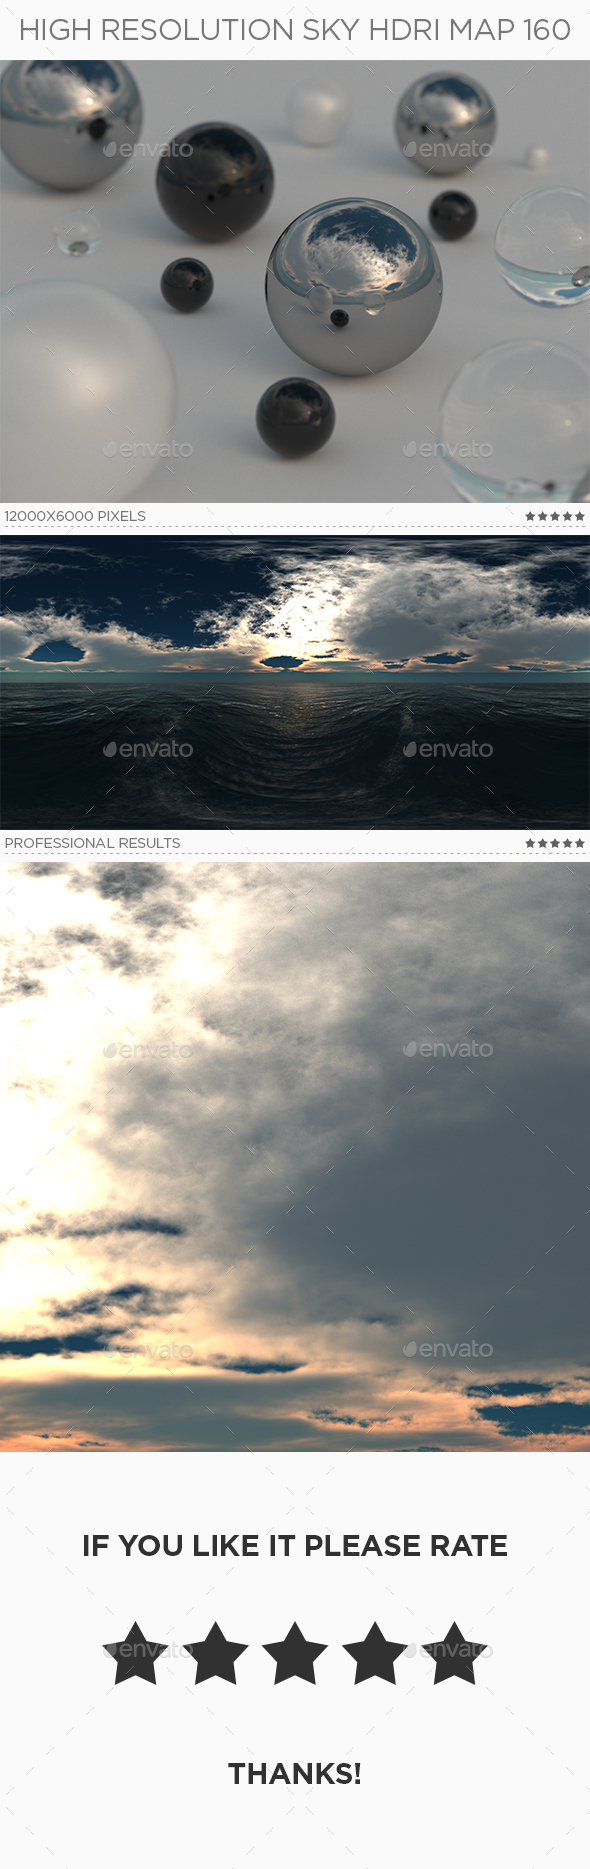 High Resolution Sky HDRi Map 160 - 3DOcean Item for Sale